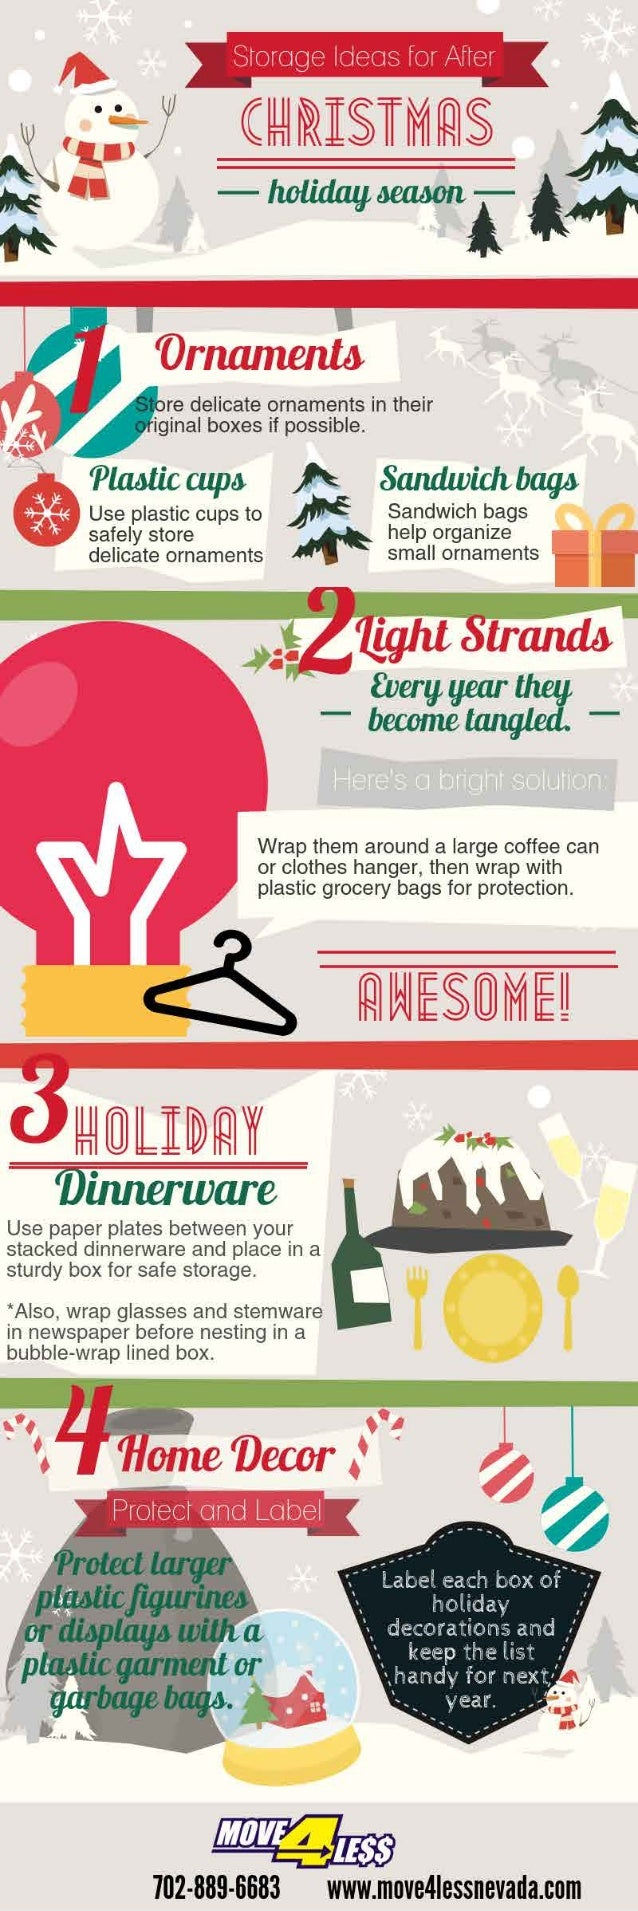 Storage ideas for your Christmas decorations